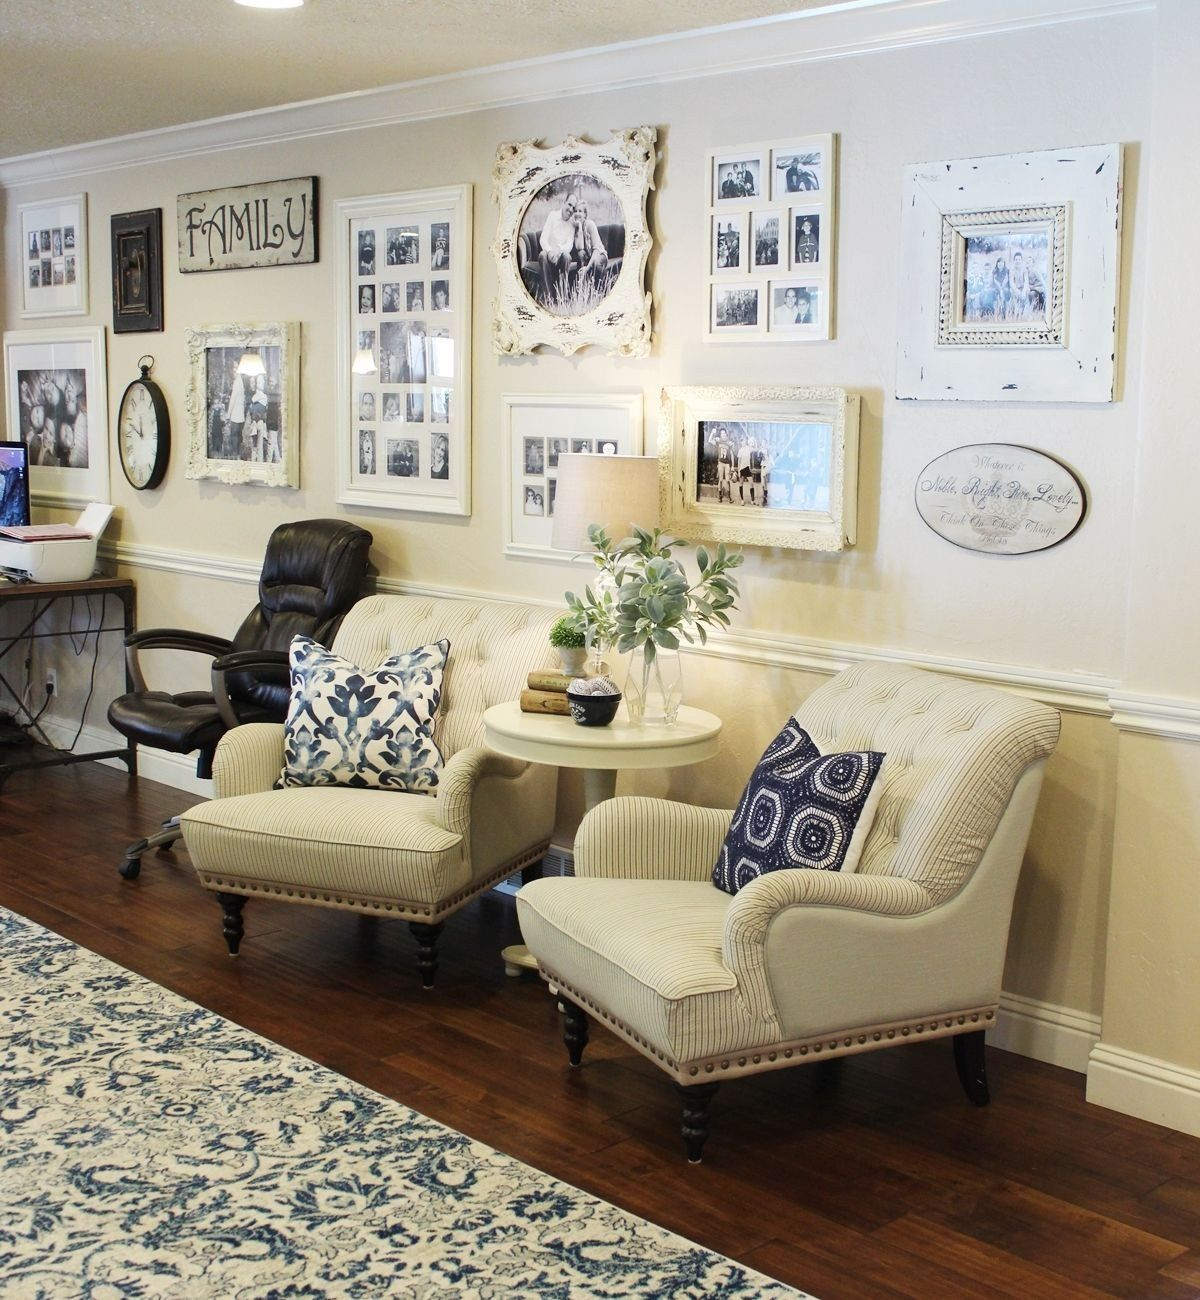 Decorating Large Wall Space In Living Room How To Decorate A Wall With Style In 2020 Living Room Wall Large Wall Decor Living Room Family Room Walls